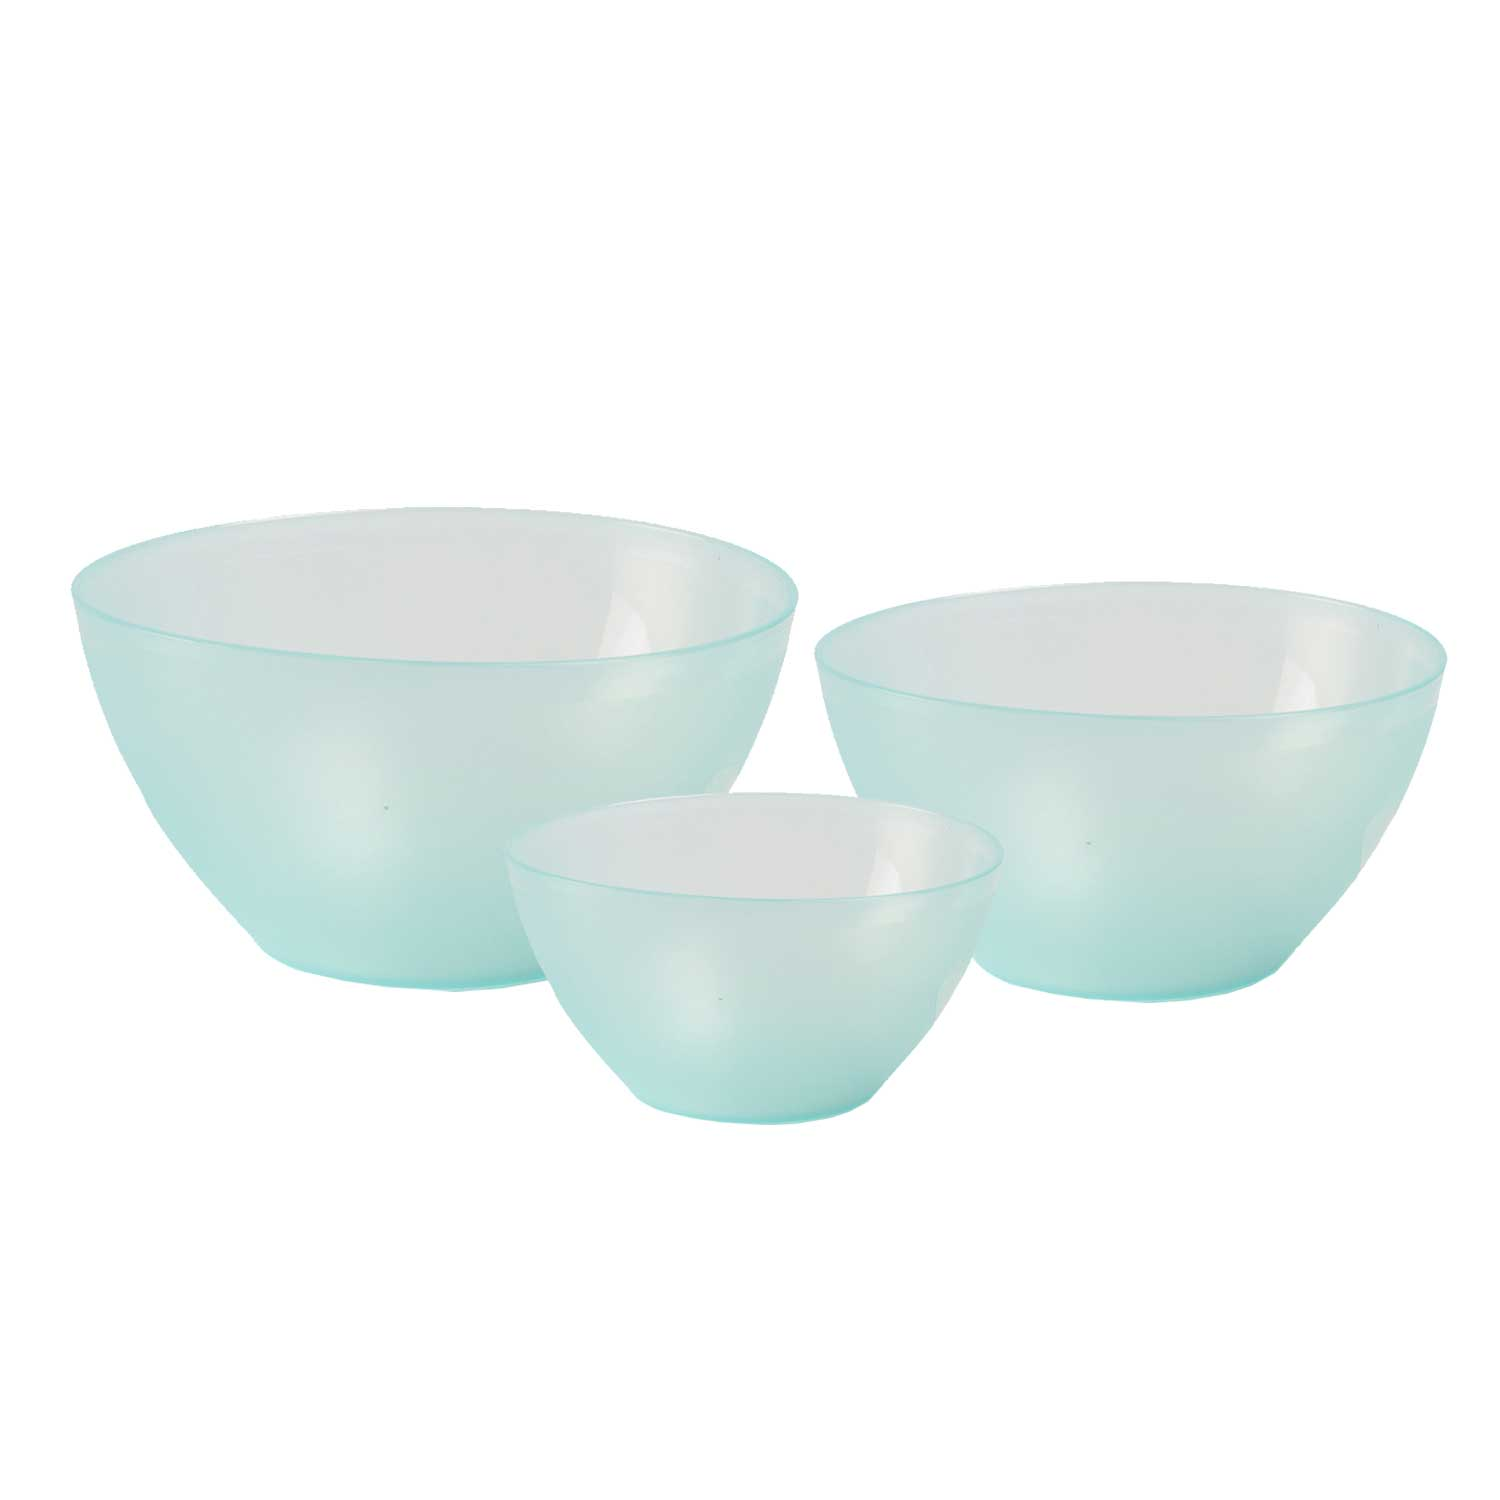 Incrizma Polypropylene Green Mixing Bowl Set of 3